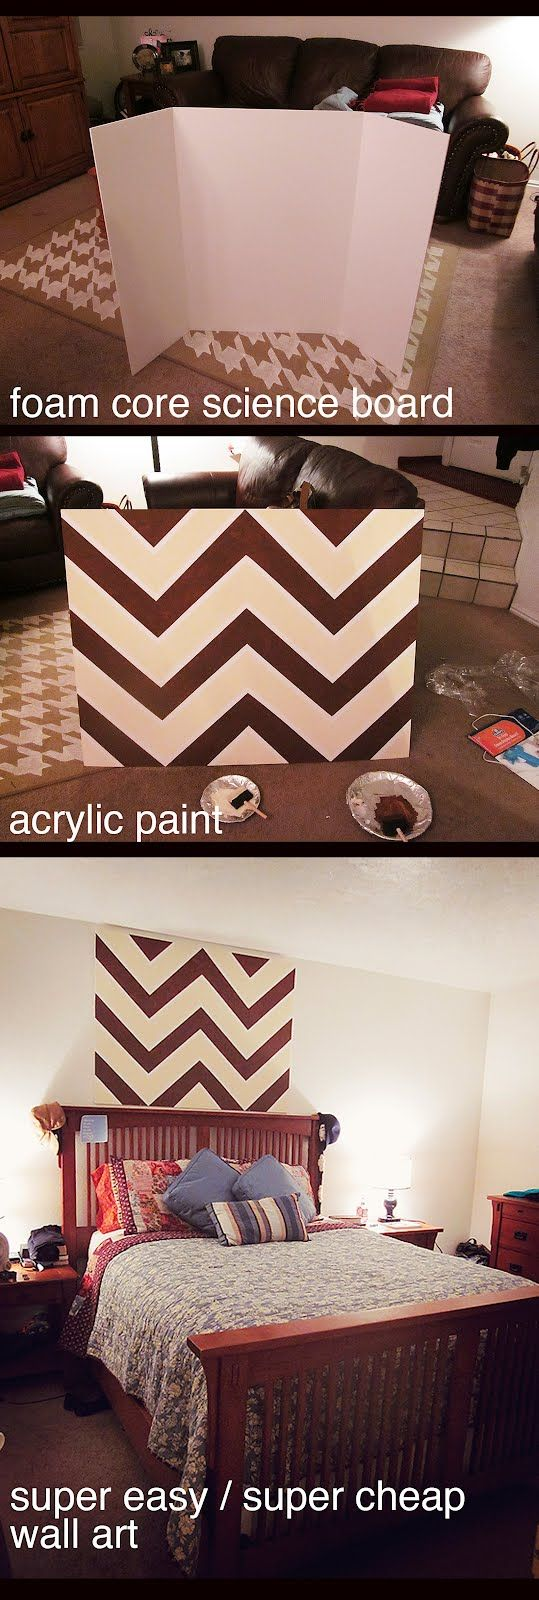 Apartment Decorating When You Can T Paint 148 best $100 budget apartment design images on pinterest | diy